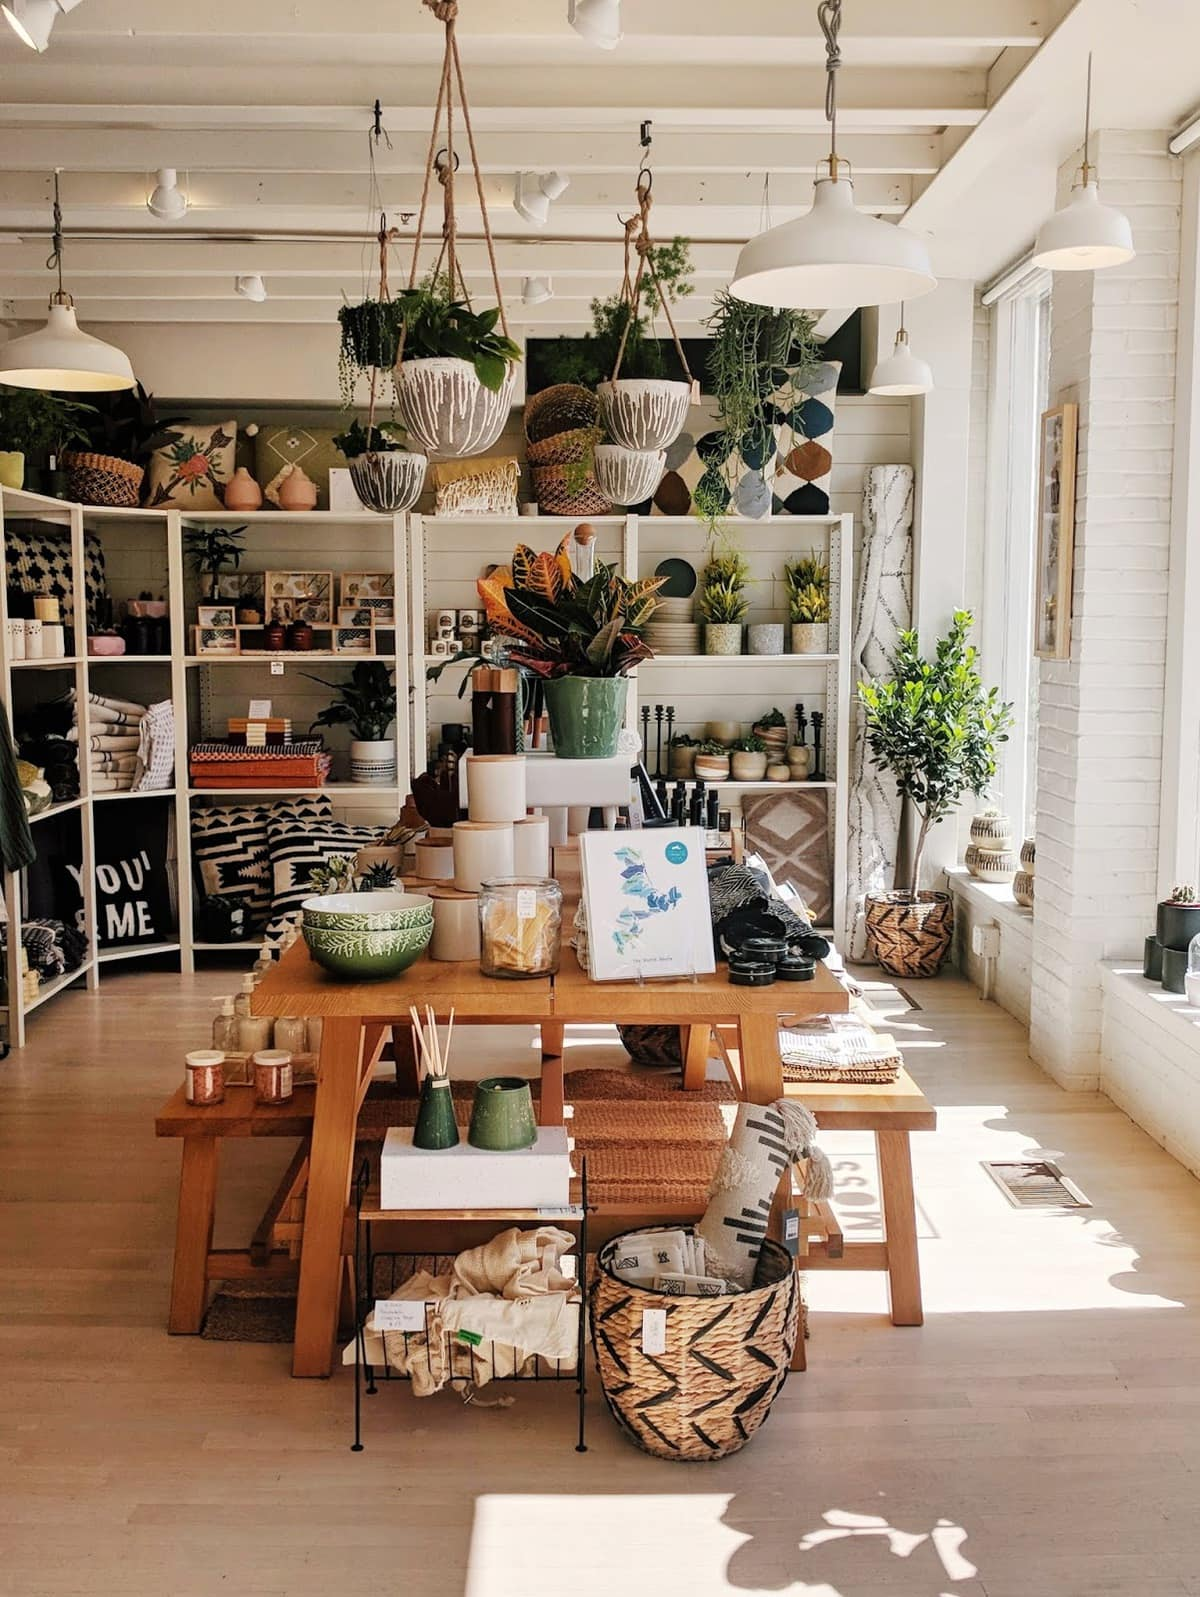 Oak+Moss shop in Salem, with hanging plants and an aesthetic white interior